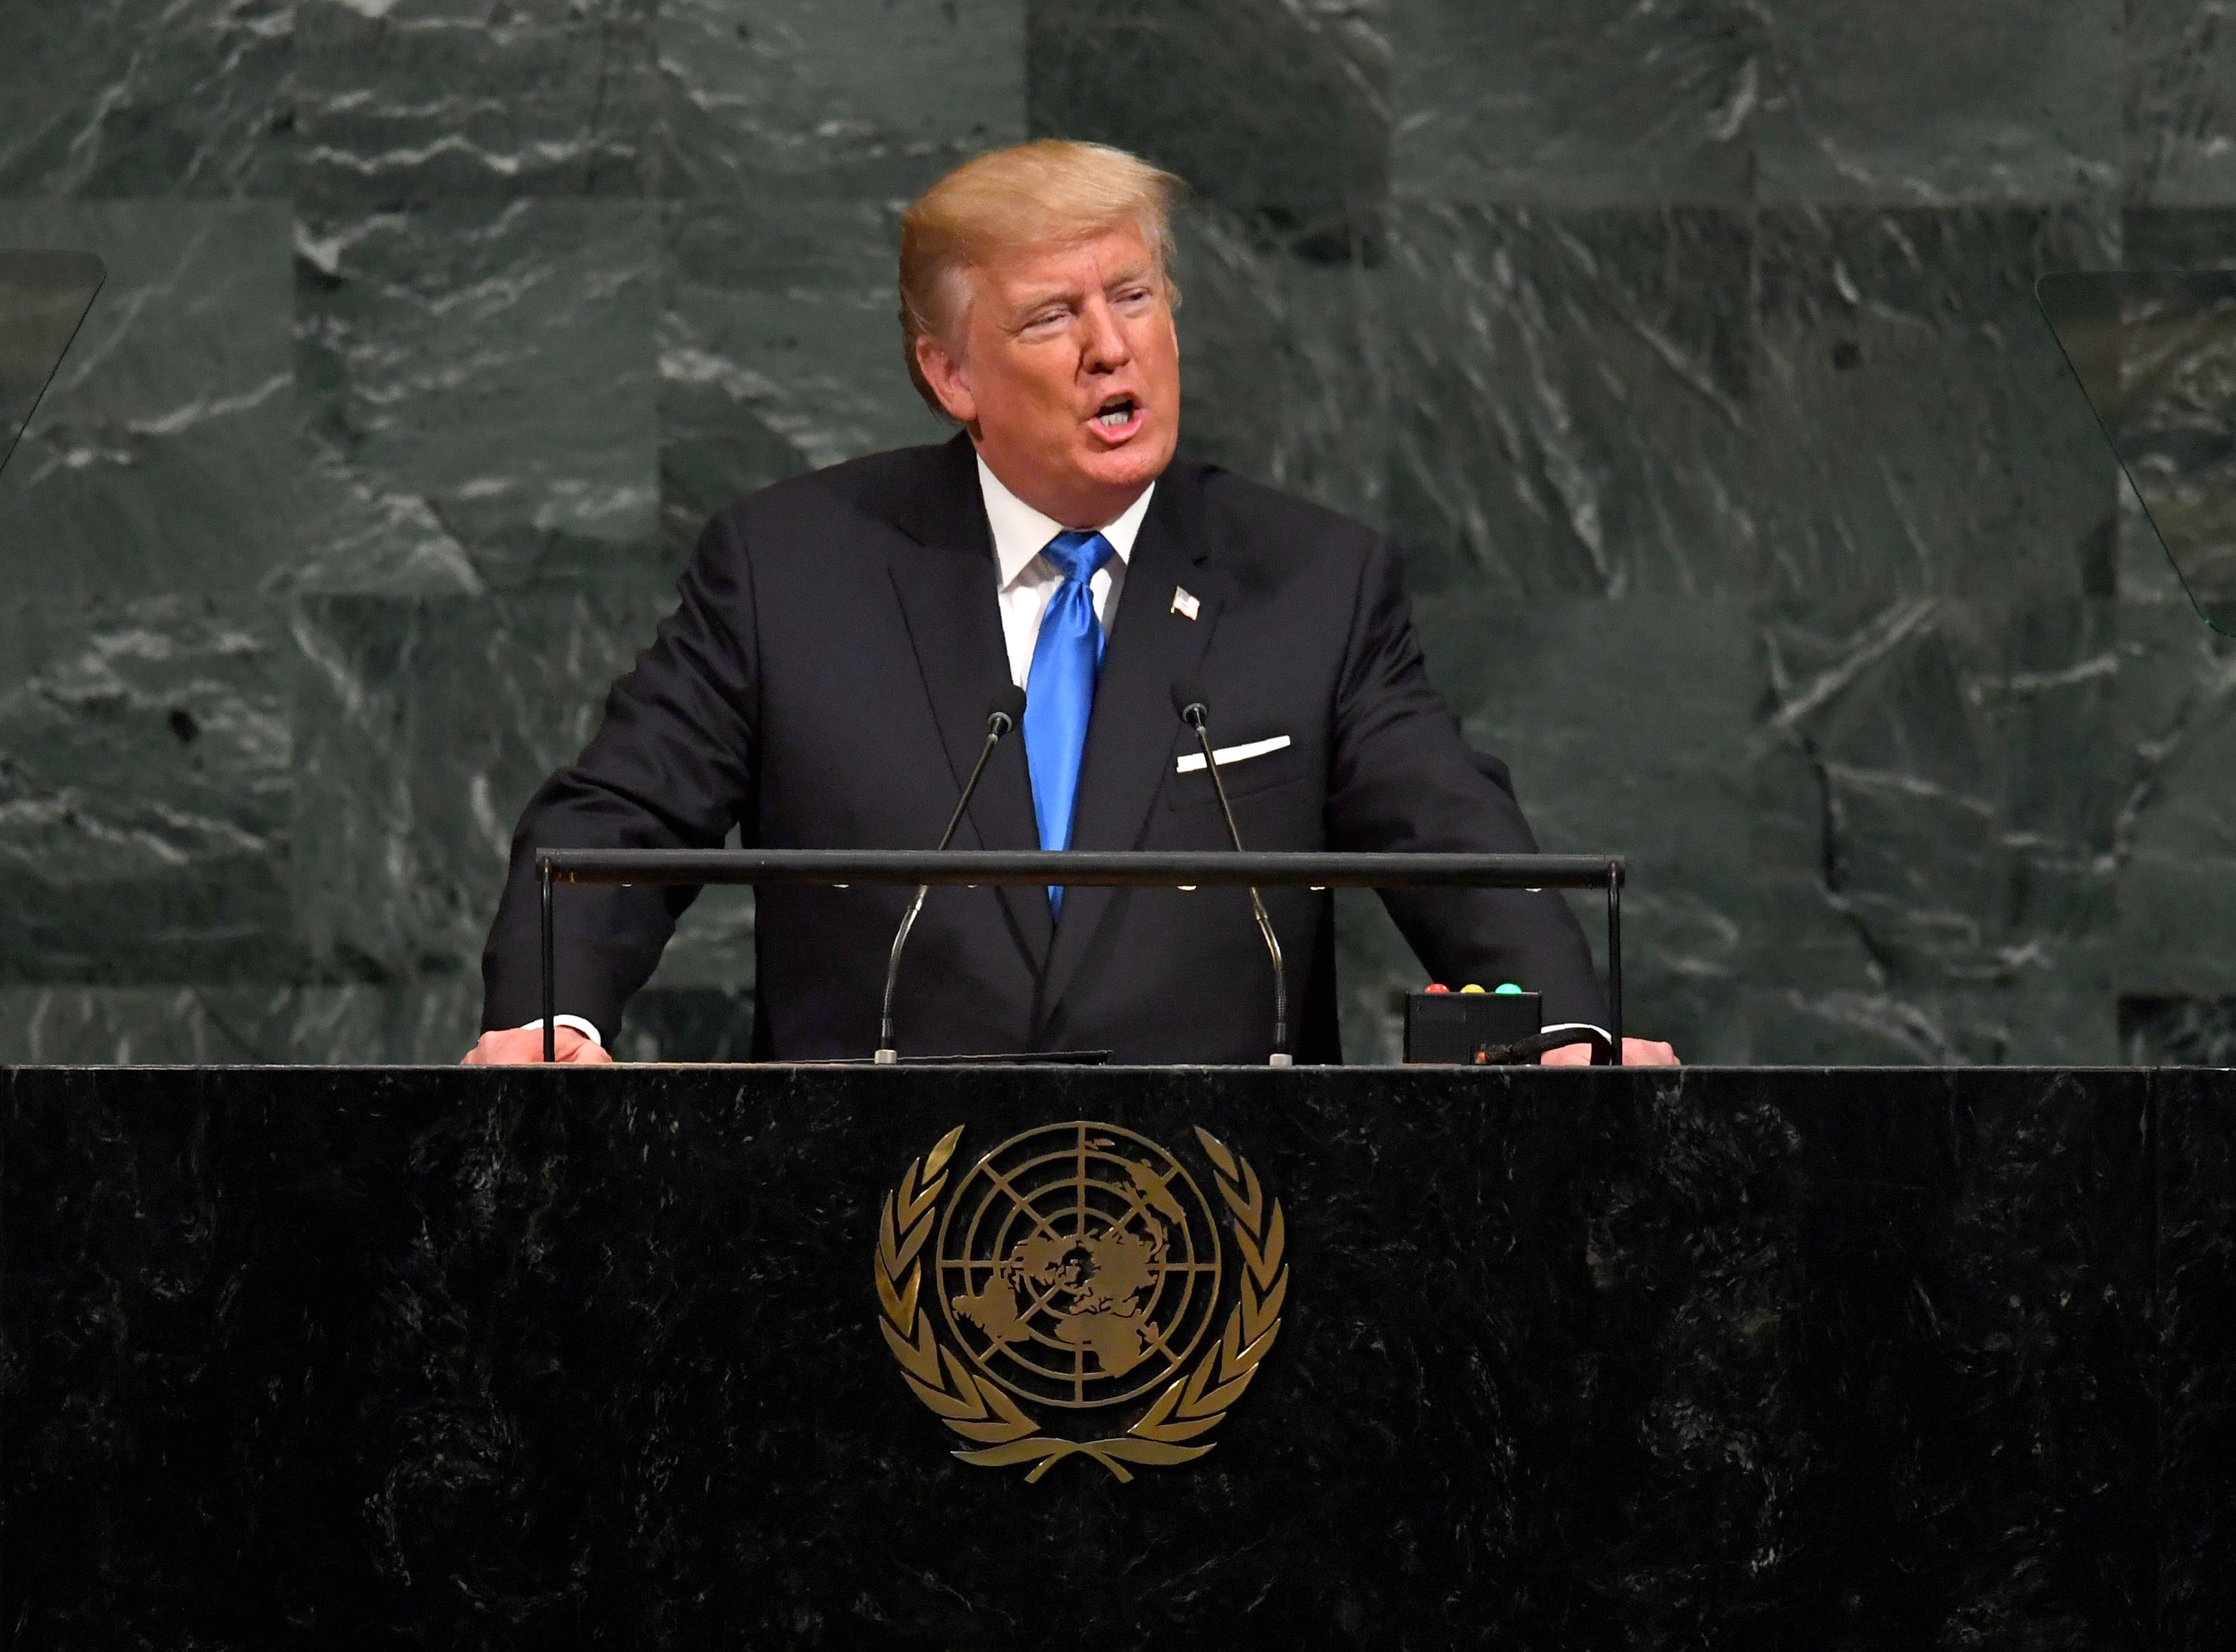 President Donald Trump addresses the 72nd Annual UN General Assembly in New York on Sept. 19 2017